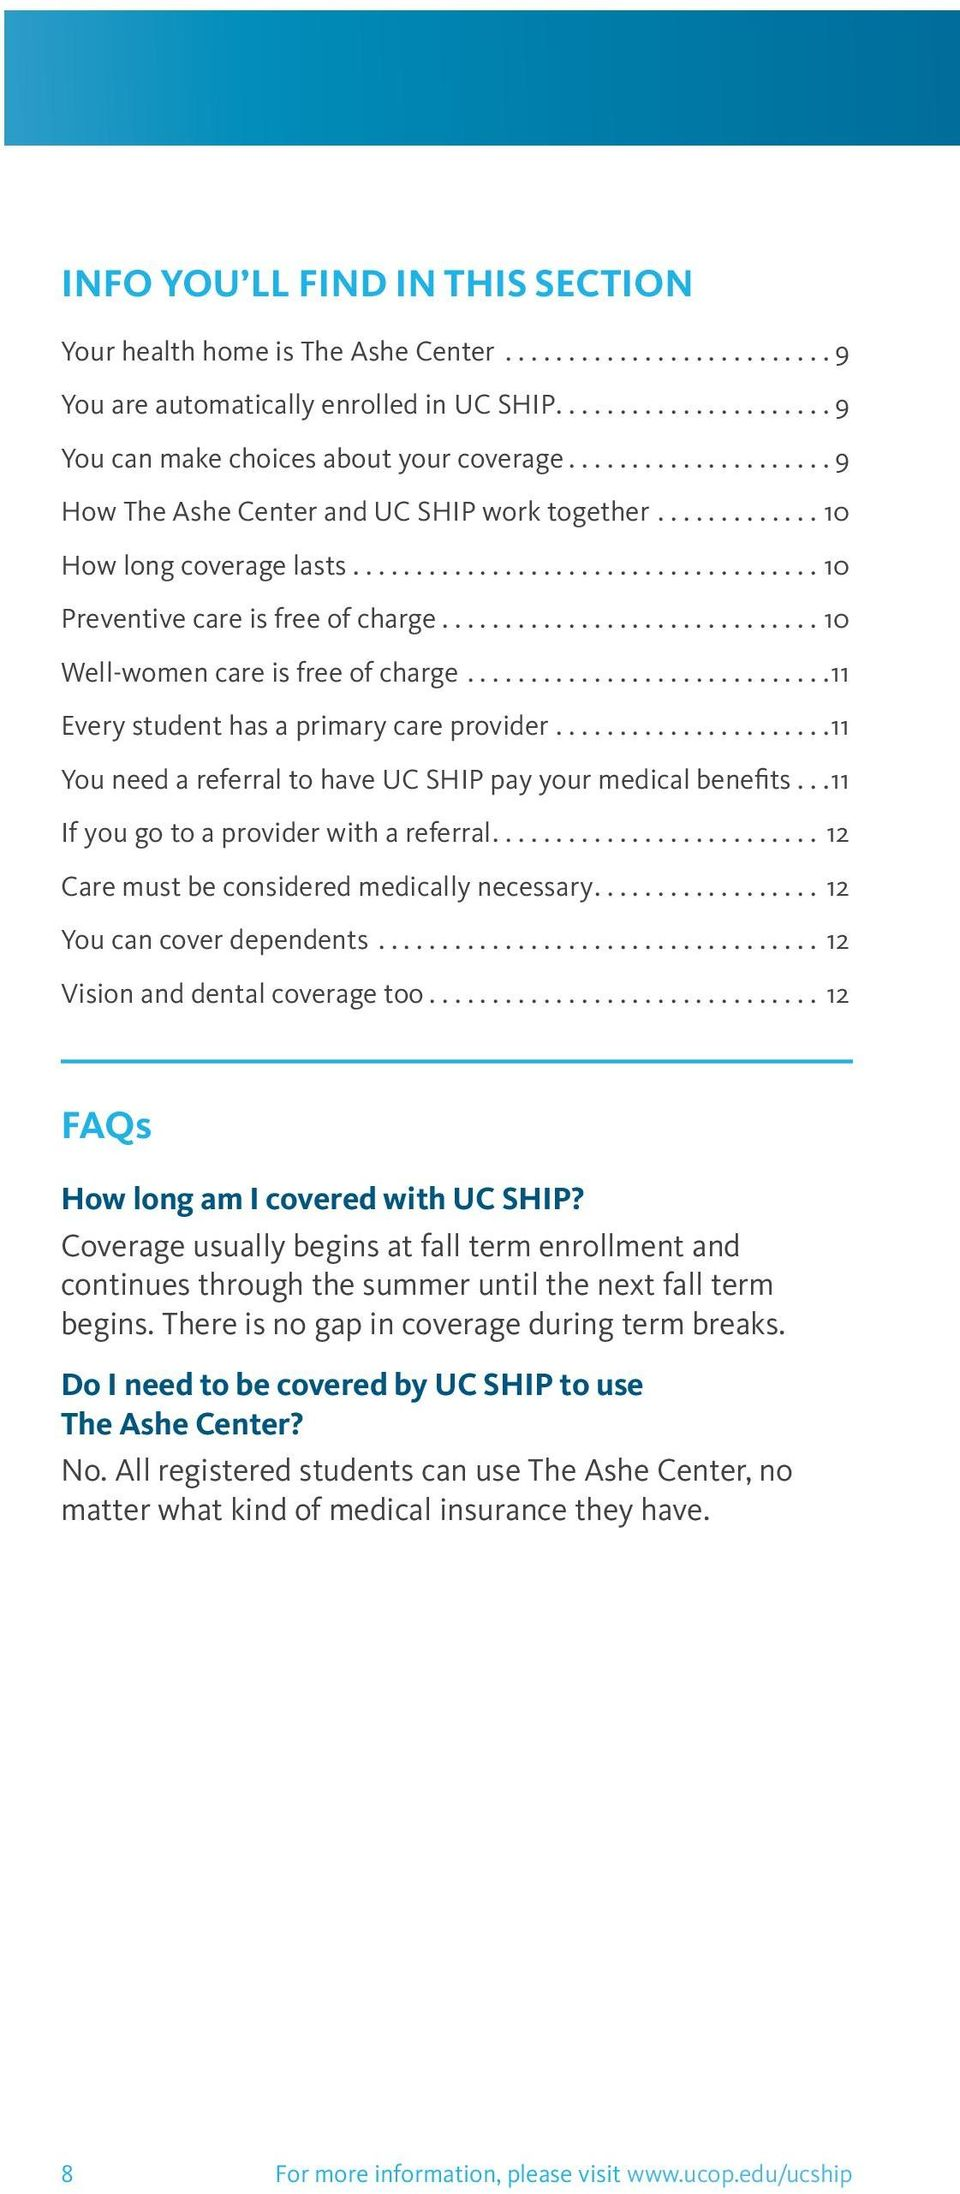 ..11 Every student has a primary care provider...11 You need a referral to have UC SHIP pay your medical benefits...11 If you go to a provider with a referral.